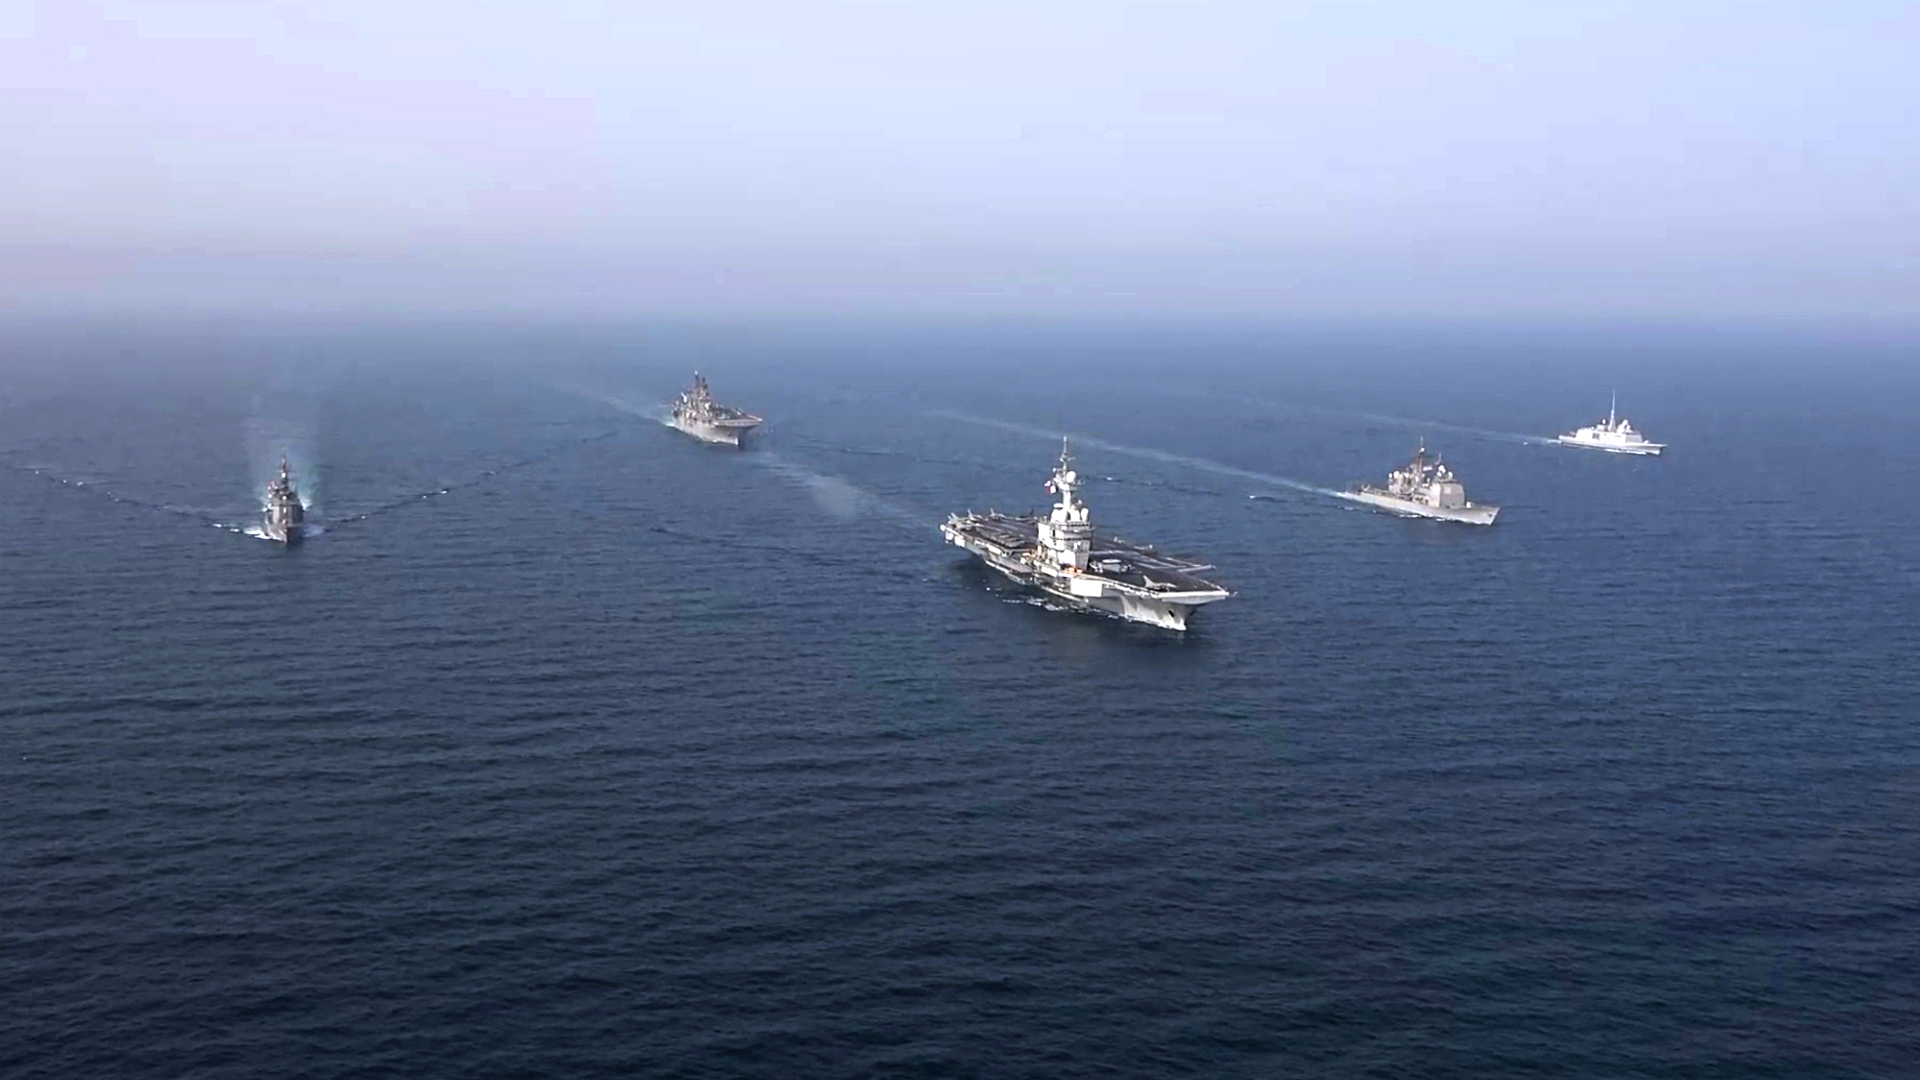 Group Arabian Sea Warfare Exercise Held Under U.S. Naval Forces Central Command